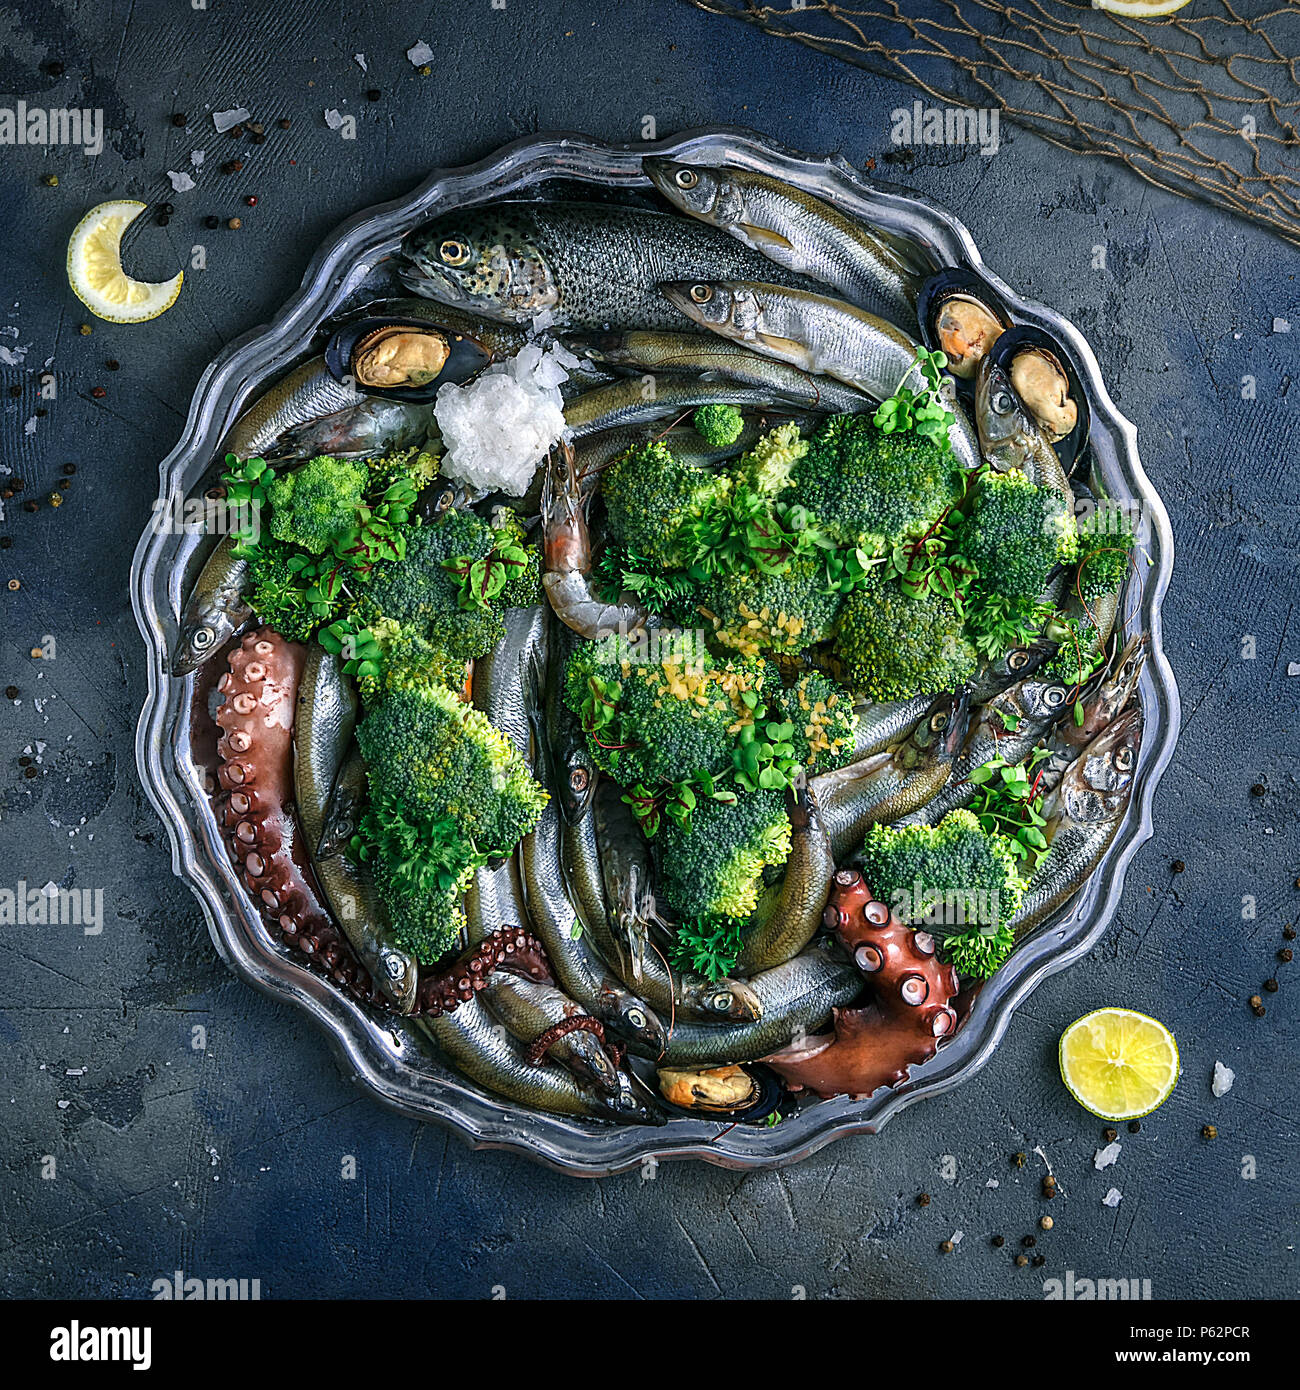 Variety of fresh seafood on a plate with green vegetables Stock Photo